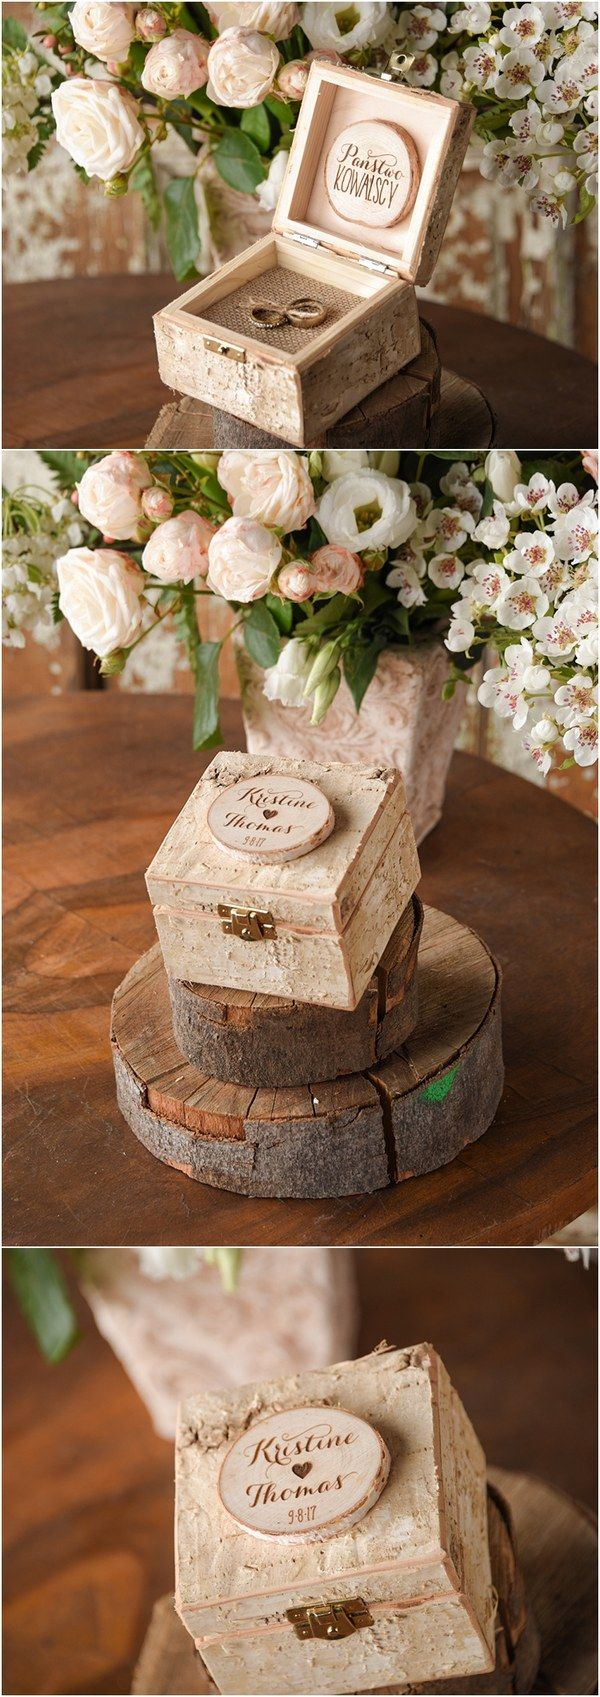 Rustic country birch wooden wedding ring box ideas @4LOVEPolkaDots